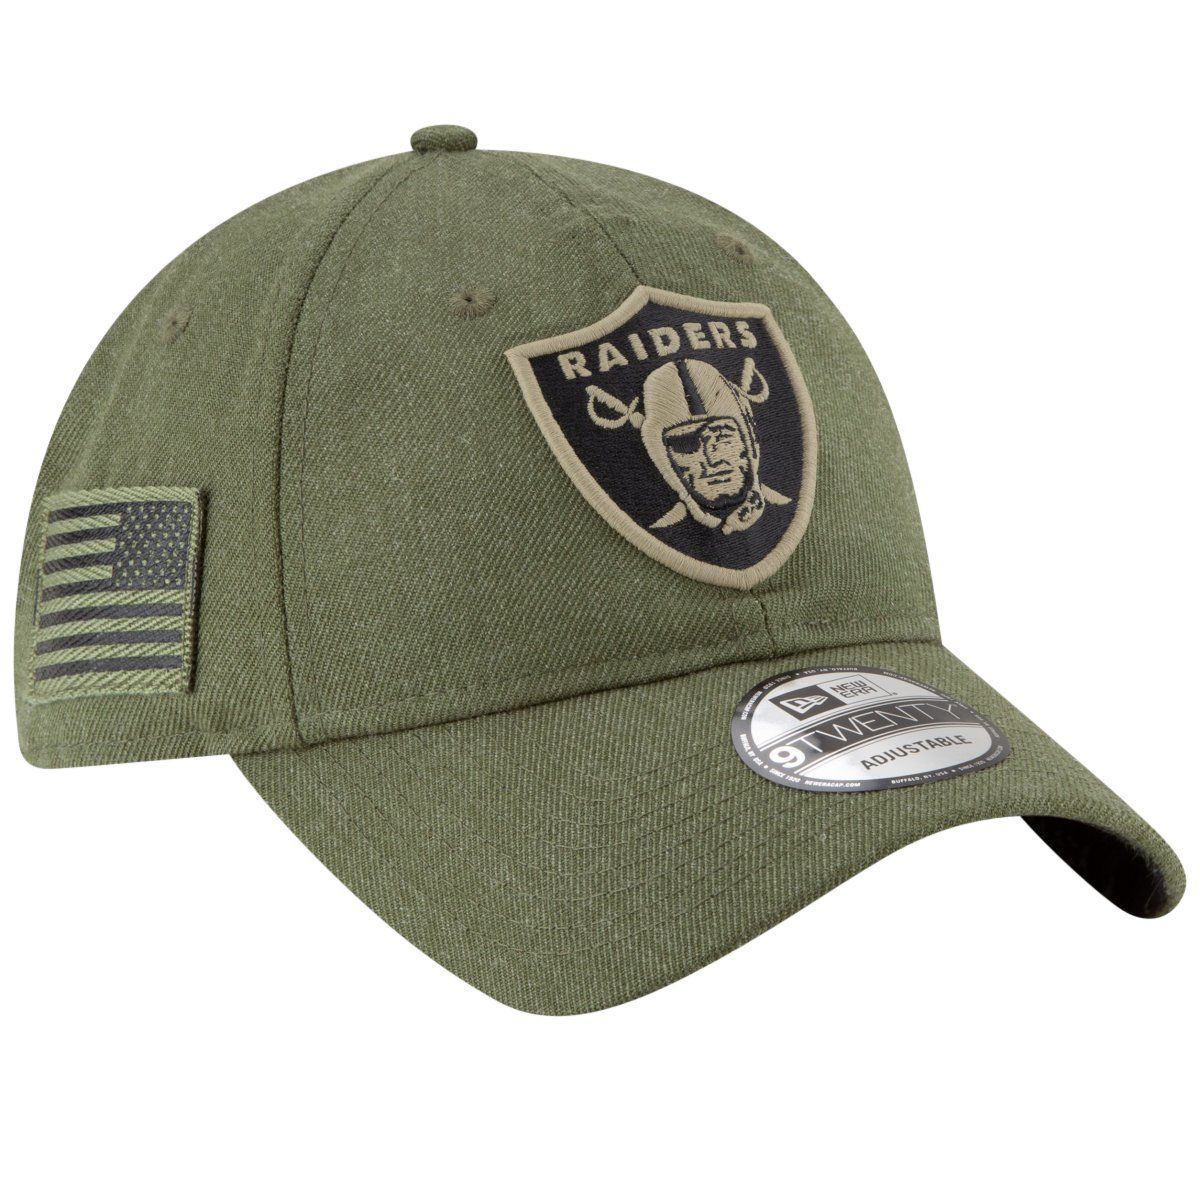 amfoo - New Era 9Twenty Cap - Salute to Service Las Vegas Raiders